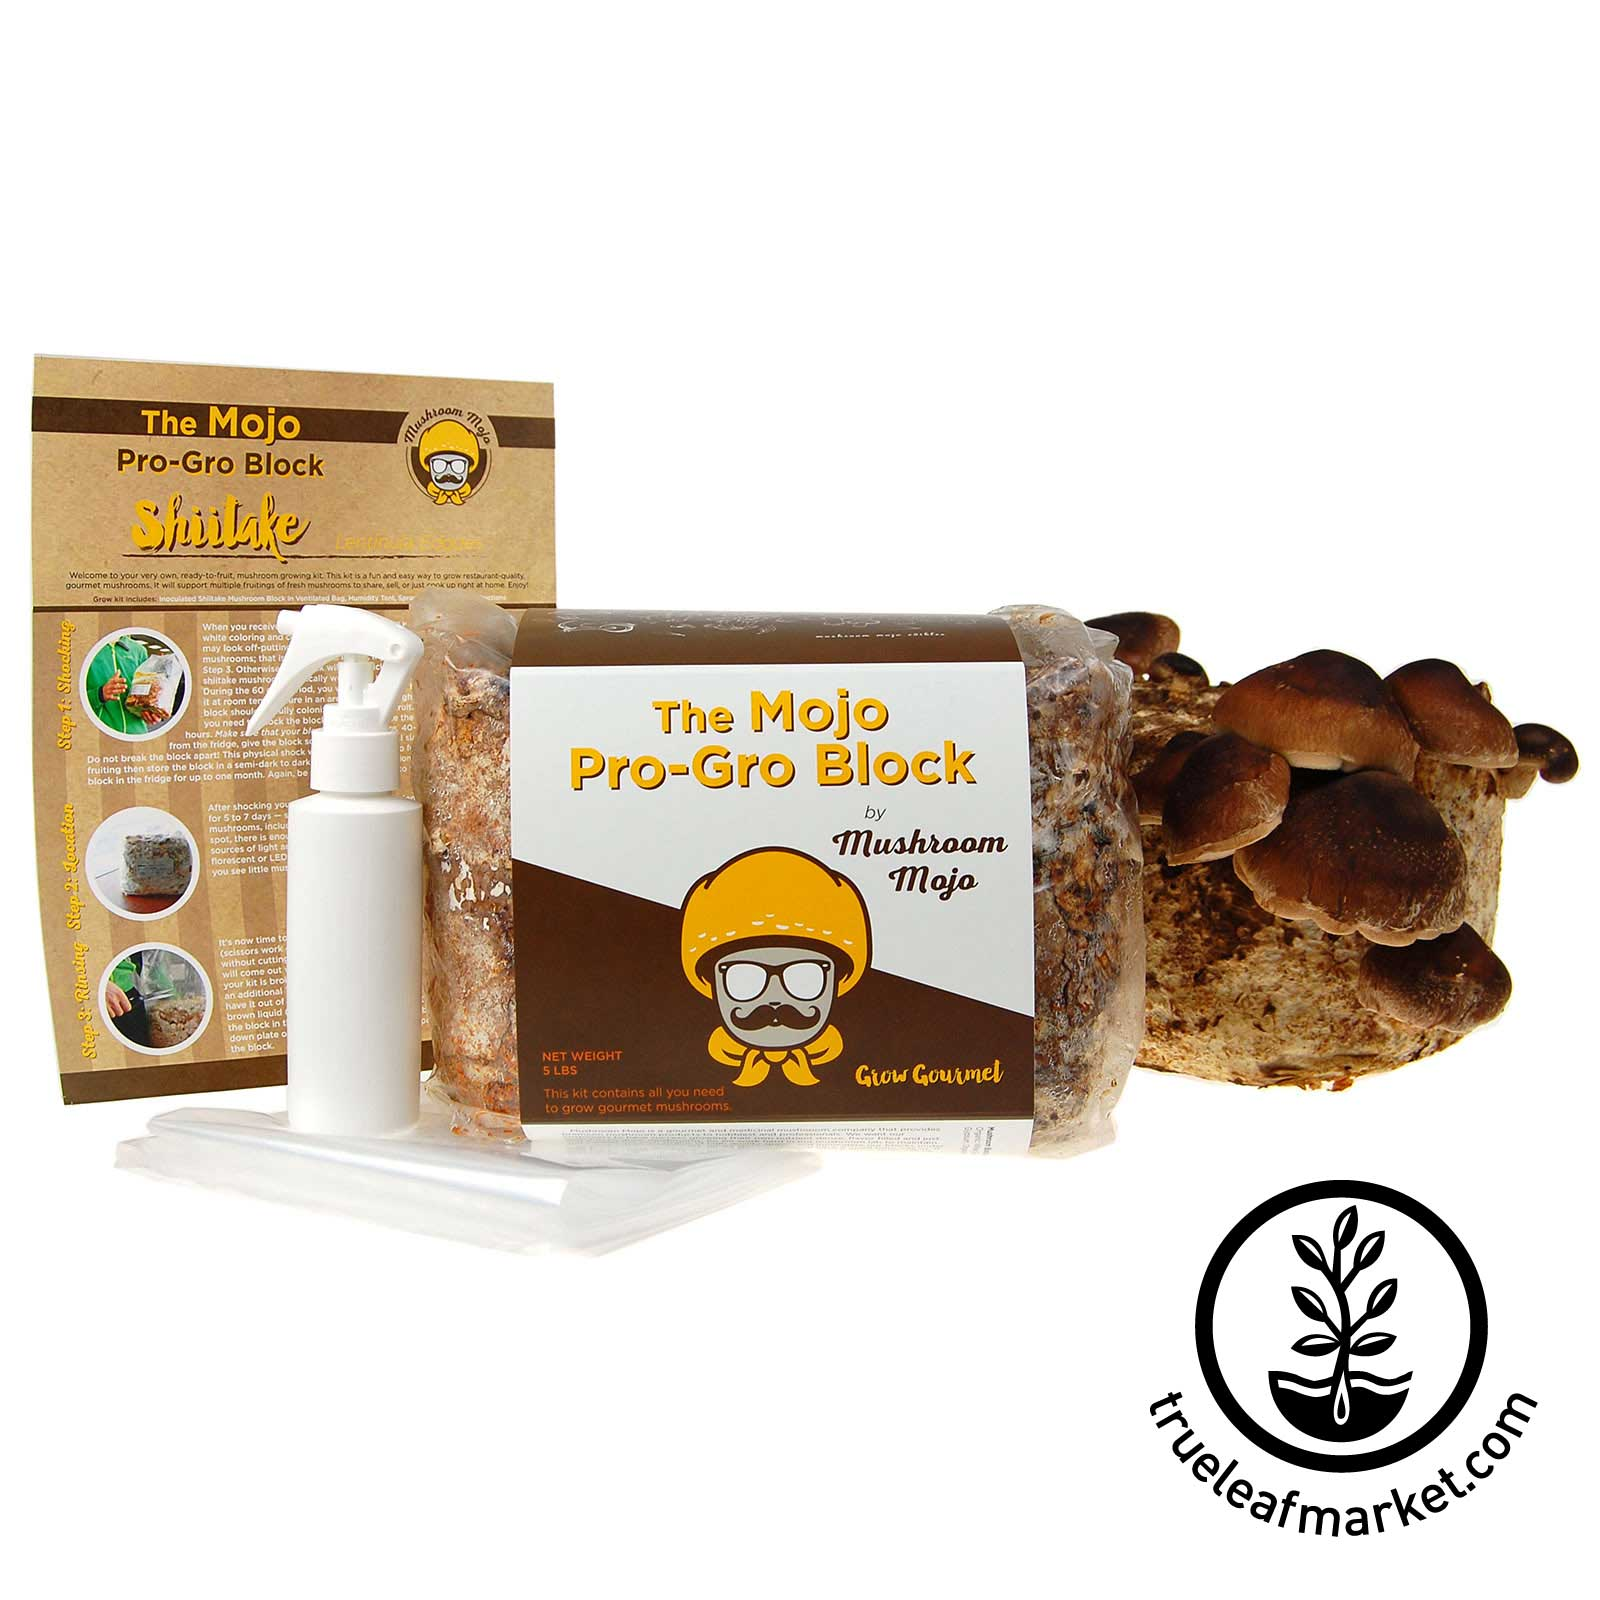 Shiitake Pro Gro Mushroom Growing Kit